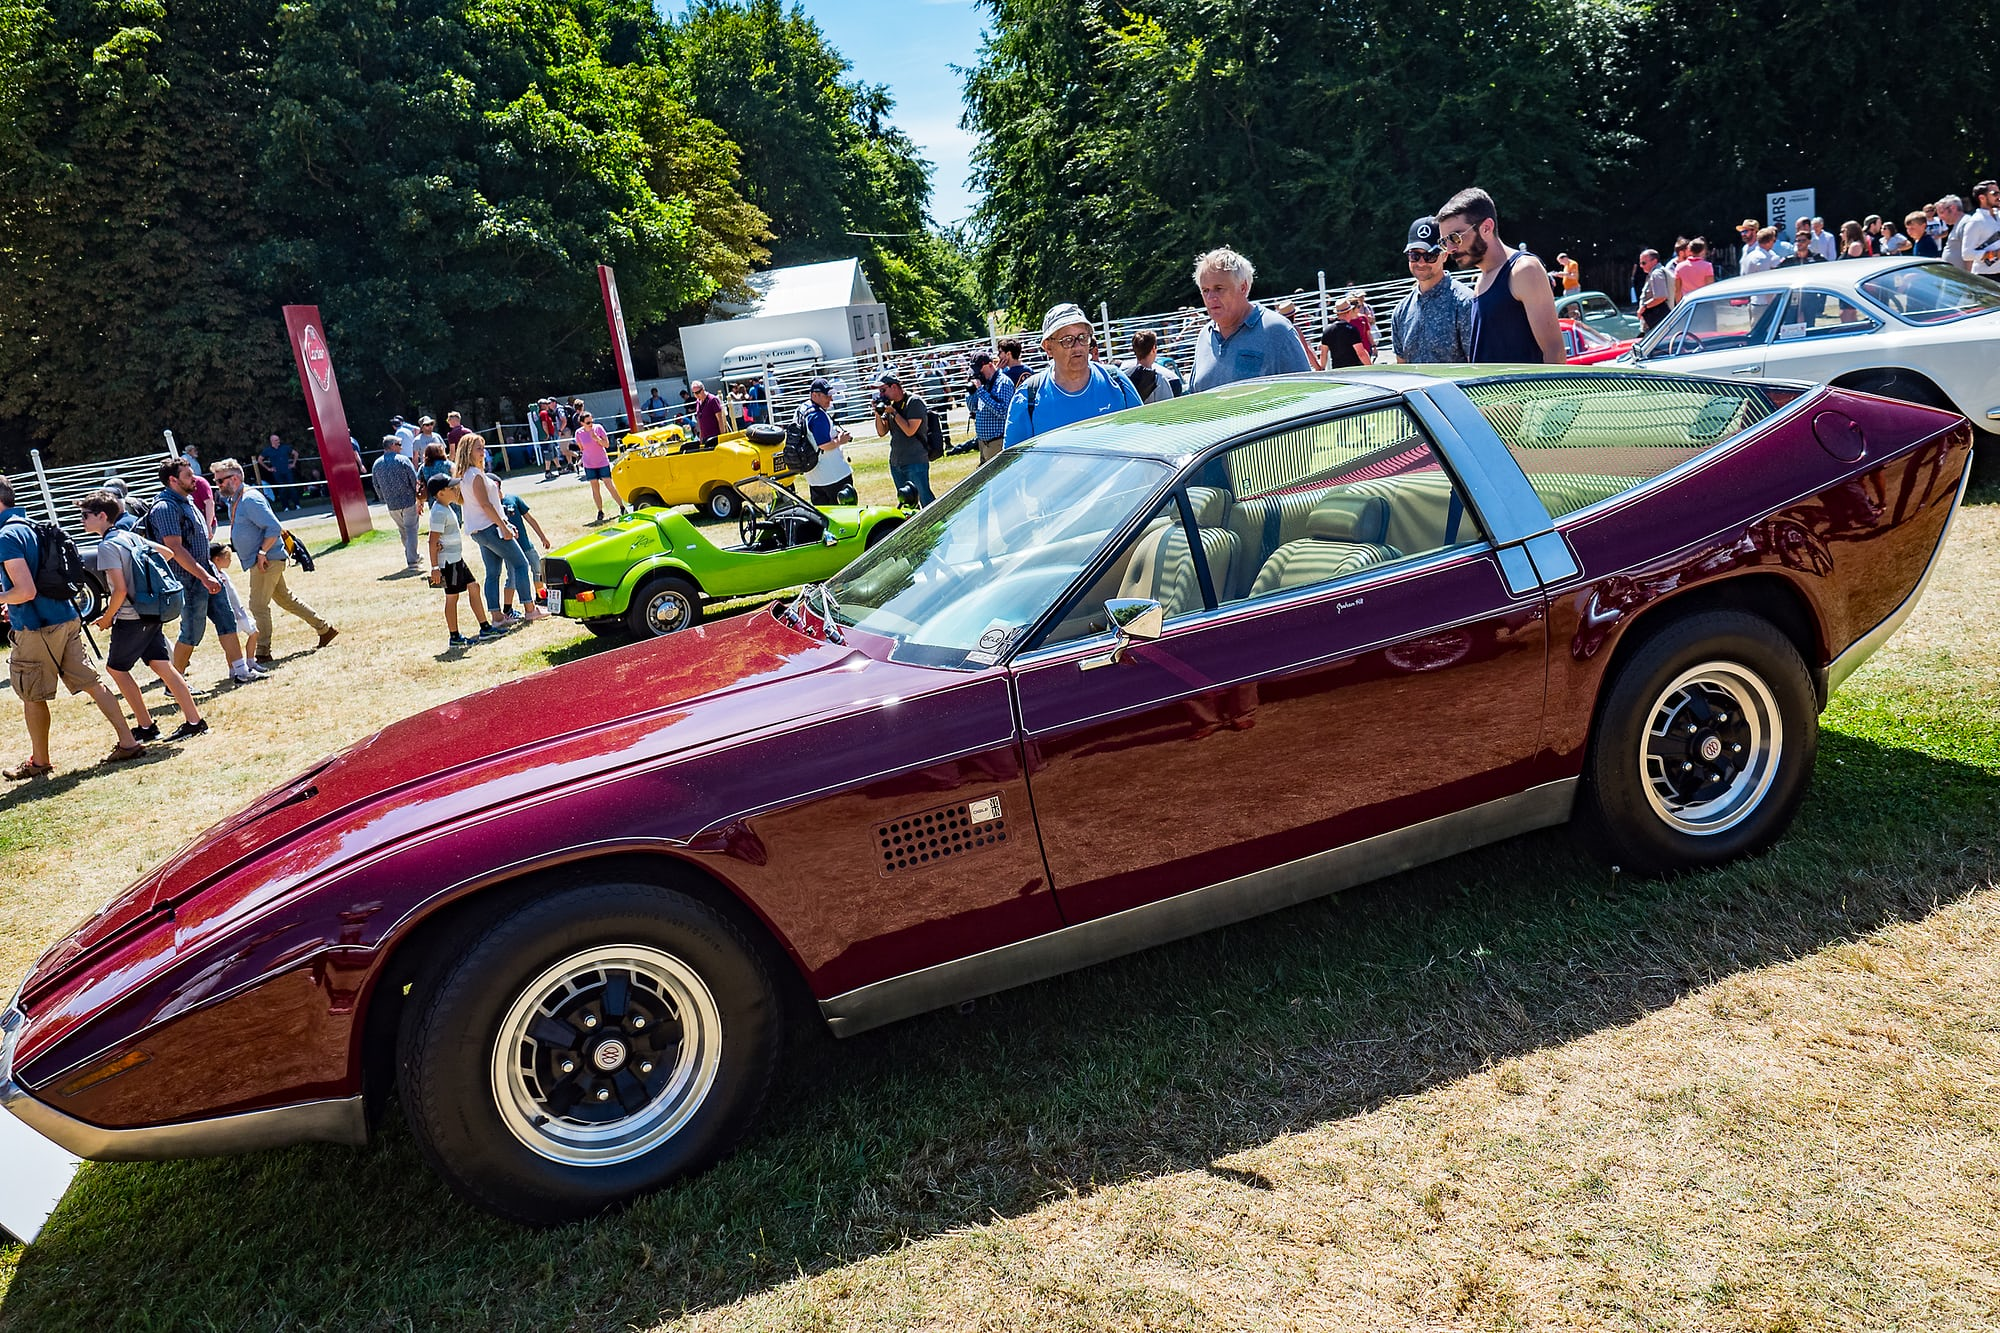 1972 Aston Martin DBS V8 Ogle  dispatches: with montblanc at the petrolhead's paradise that is the goodwood festival of speed Dispatches: With Montblanc At The Petrolhead's Paradise That Is The Goodwood Festival Of Speed P7021679